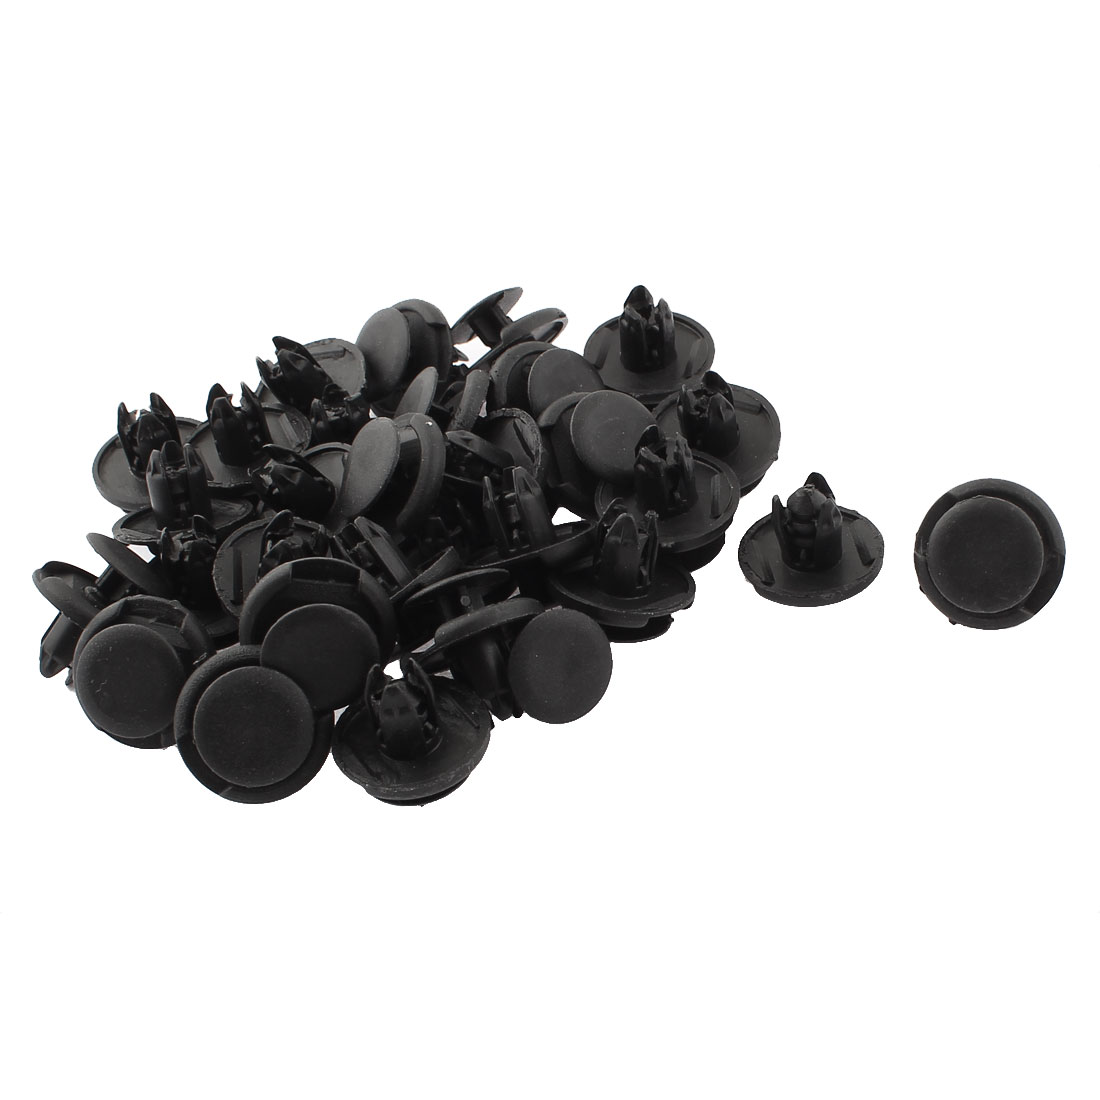 8mm x 19mm x 12mm Plastic Car Bumper Fender Push Clips Rivets Retainer 30pcs